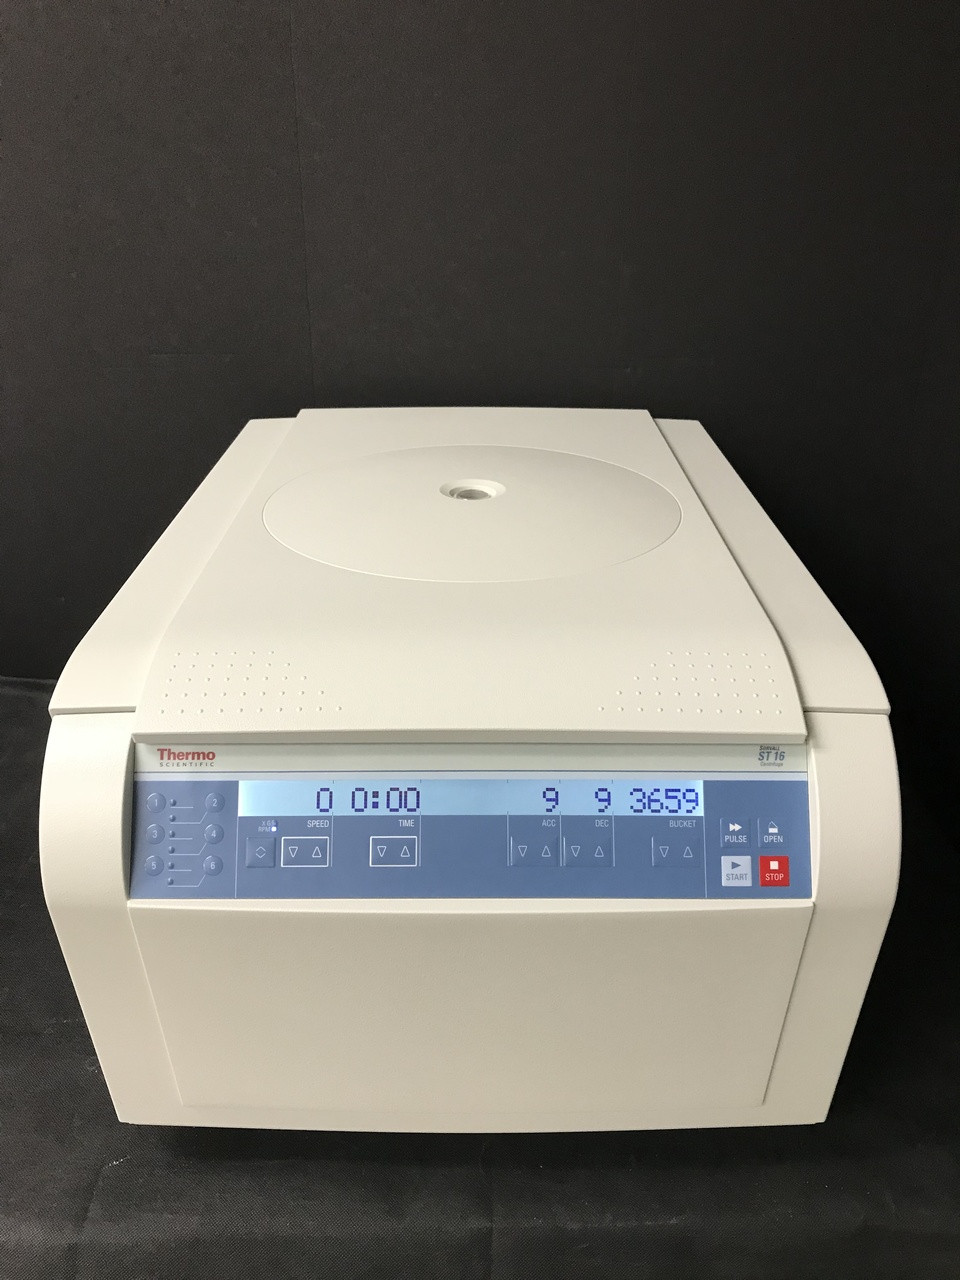 Thermo ST 16  Refurb S/N 292958 with TX200 Rotor,Buckets,Lids and 6Month  warranty